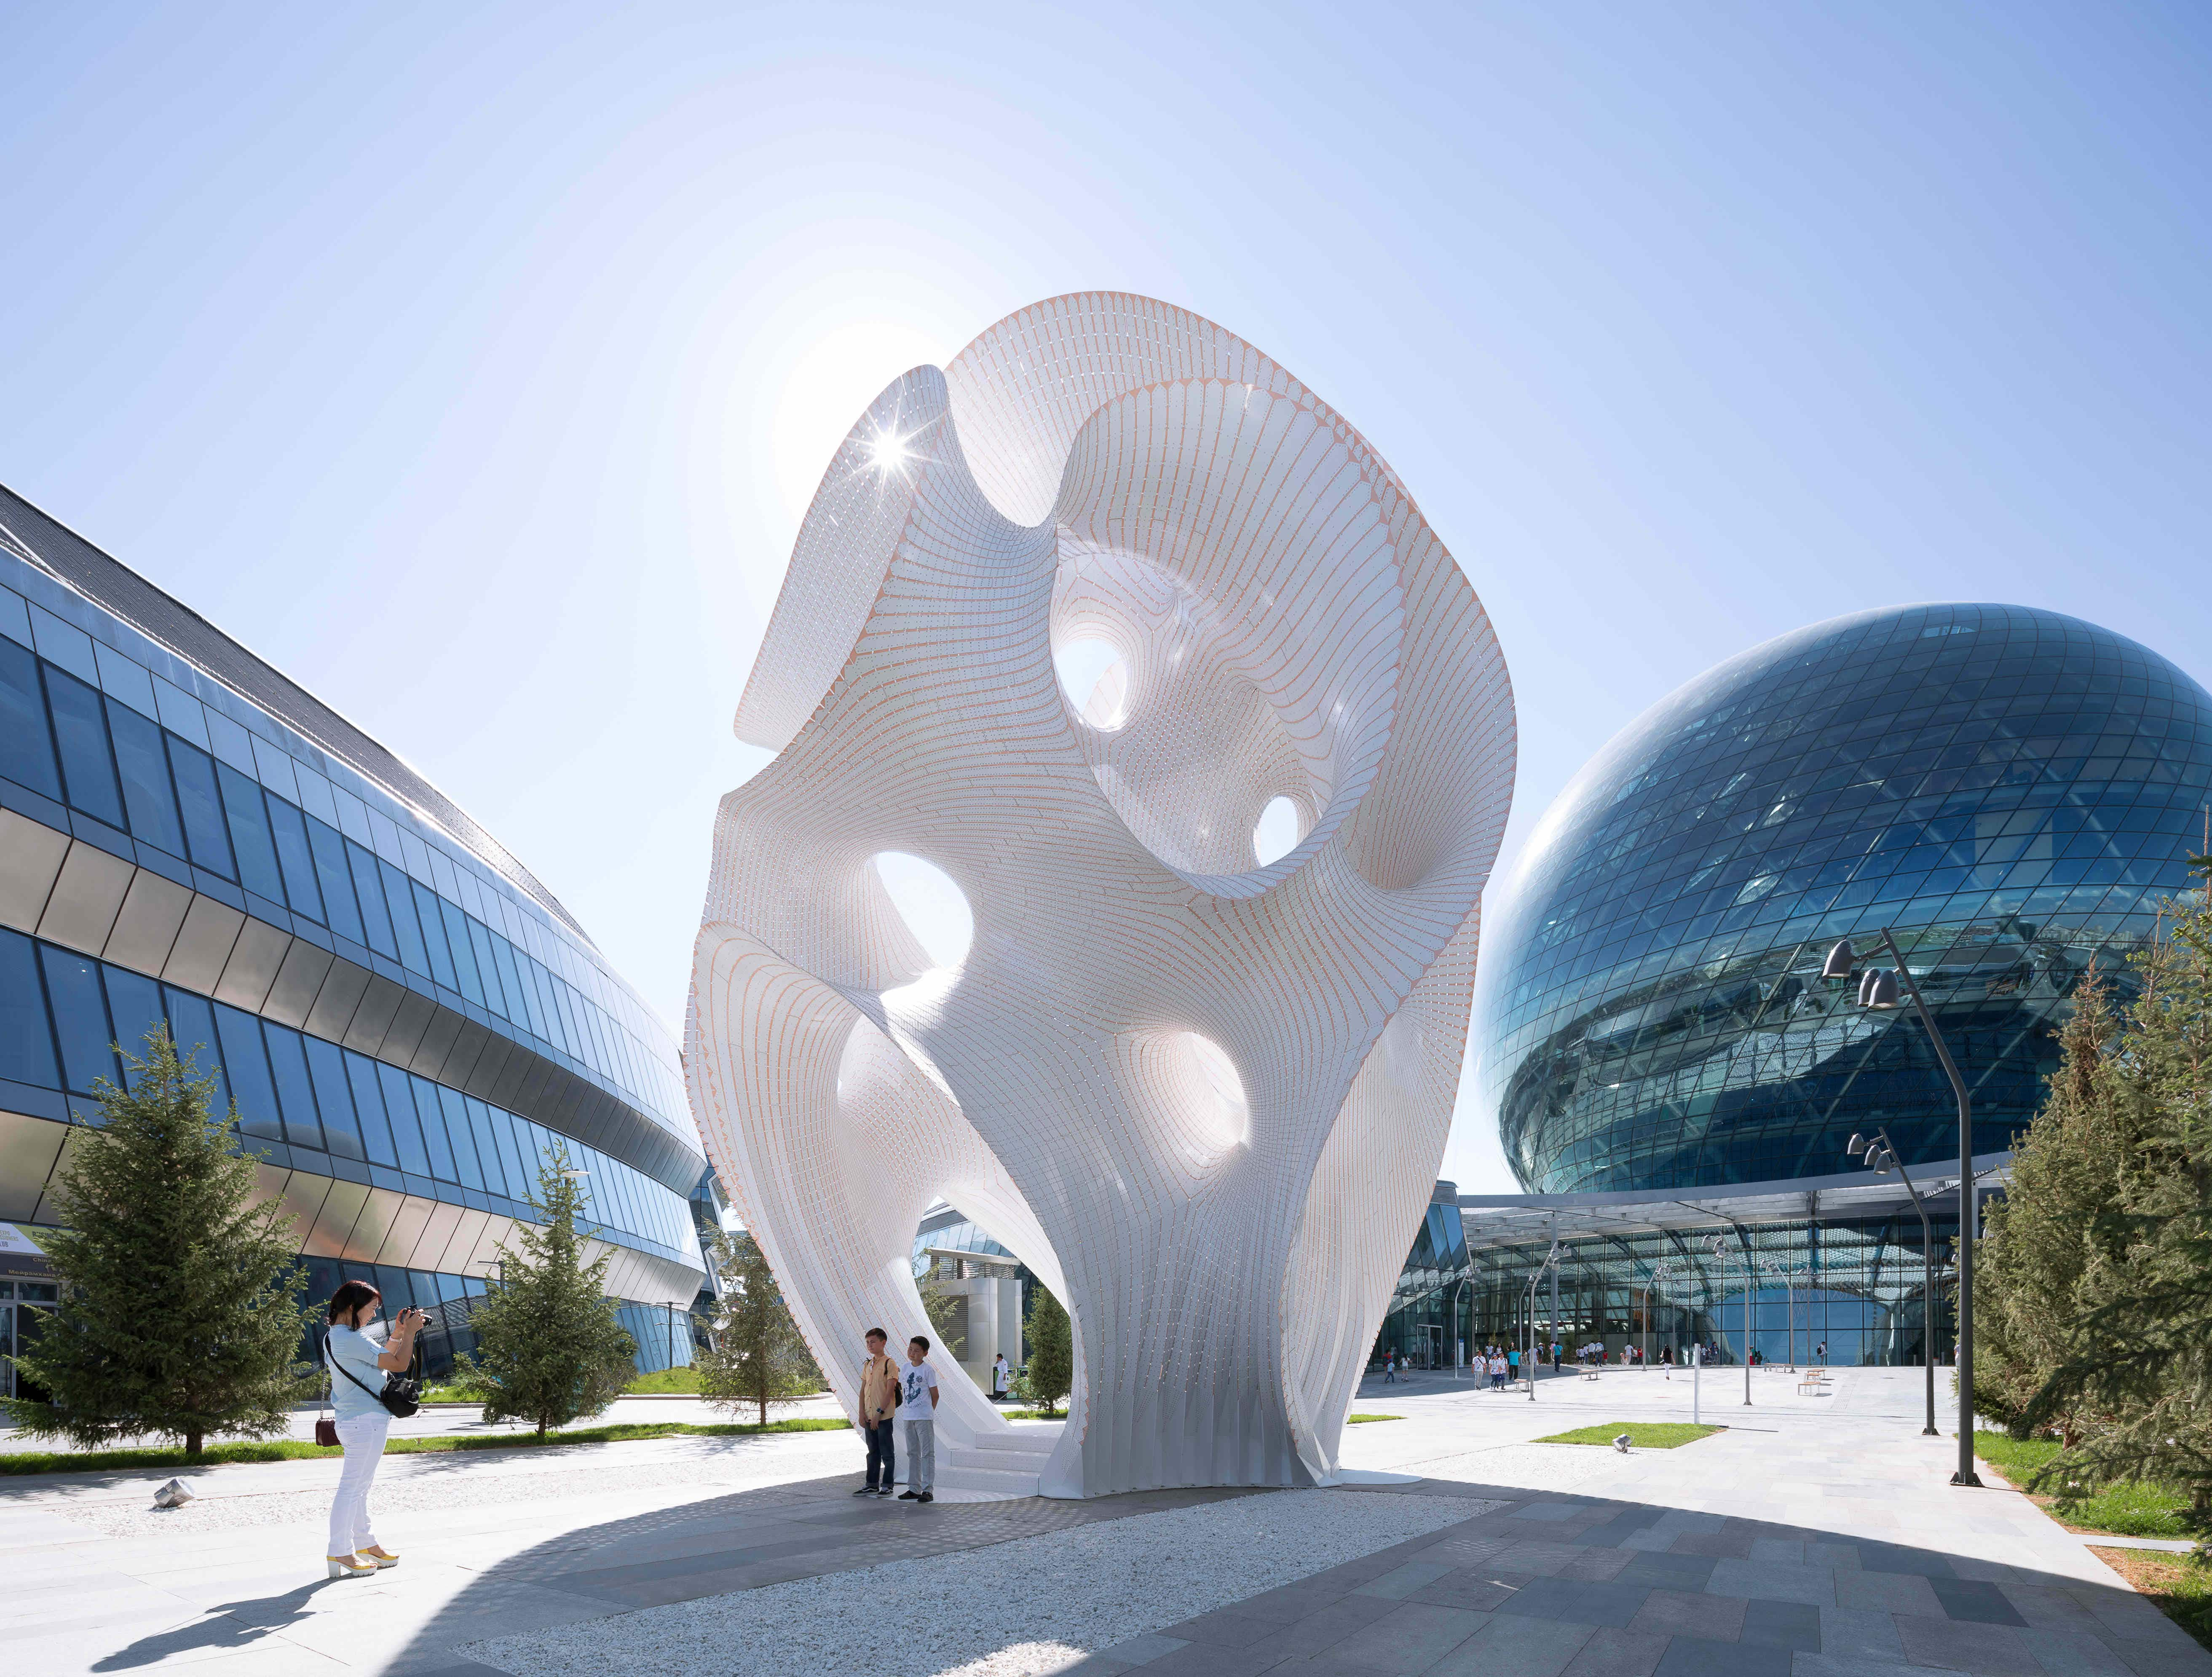 This public piece of art has been unveiled in Kazakhstan as a space for discovery and wonder